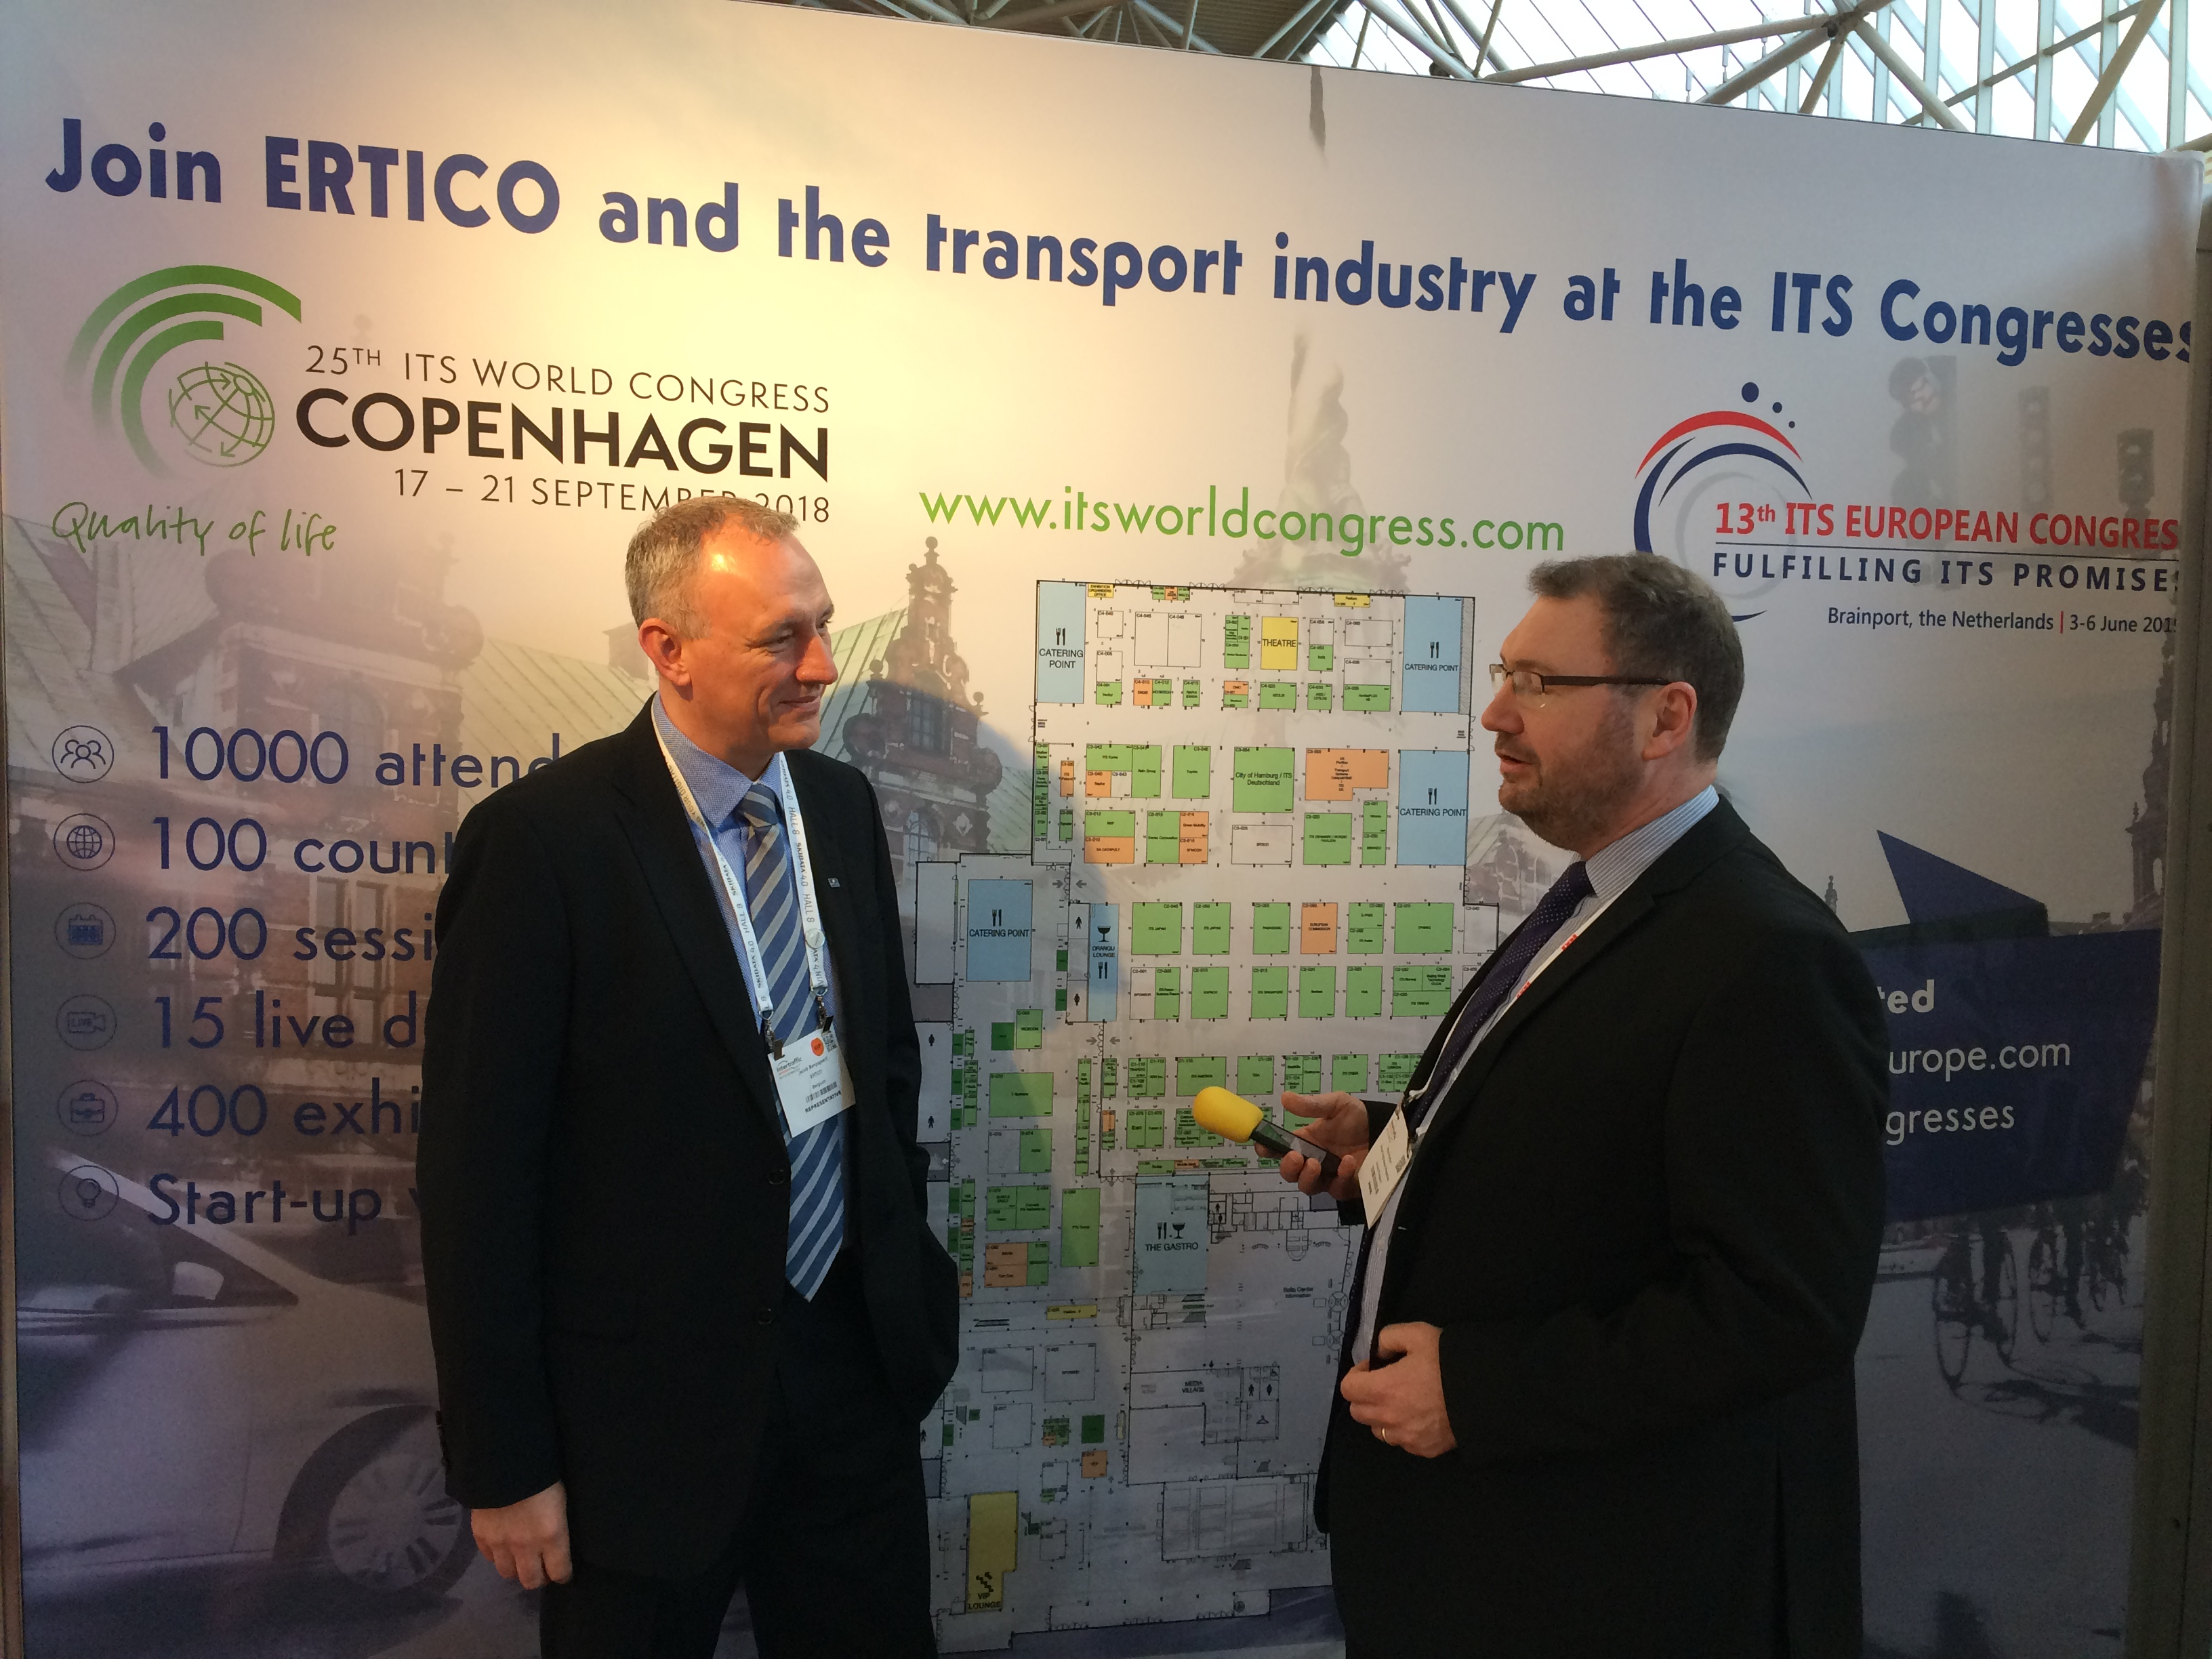 Partnership is the key to success: a recap of Intertraffic - ERTICO